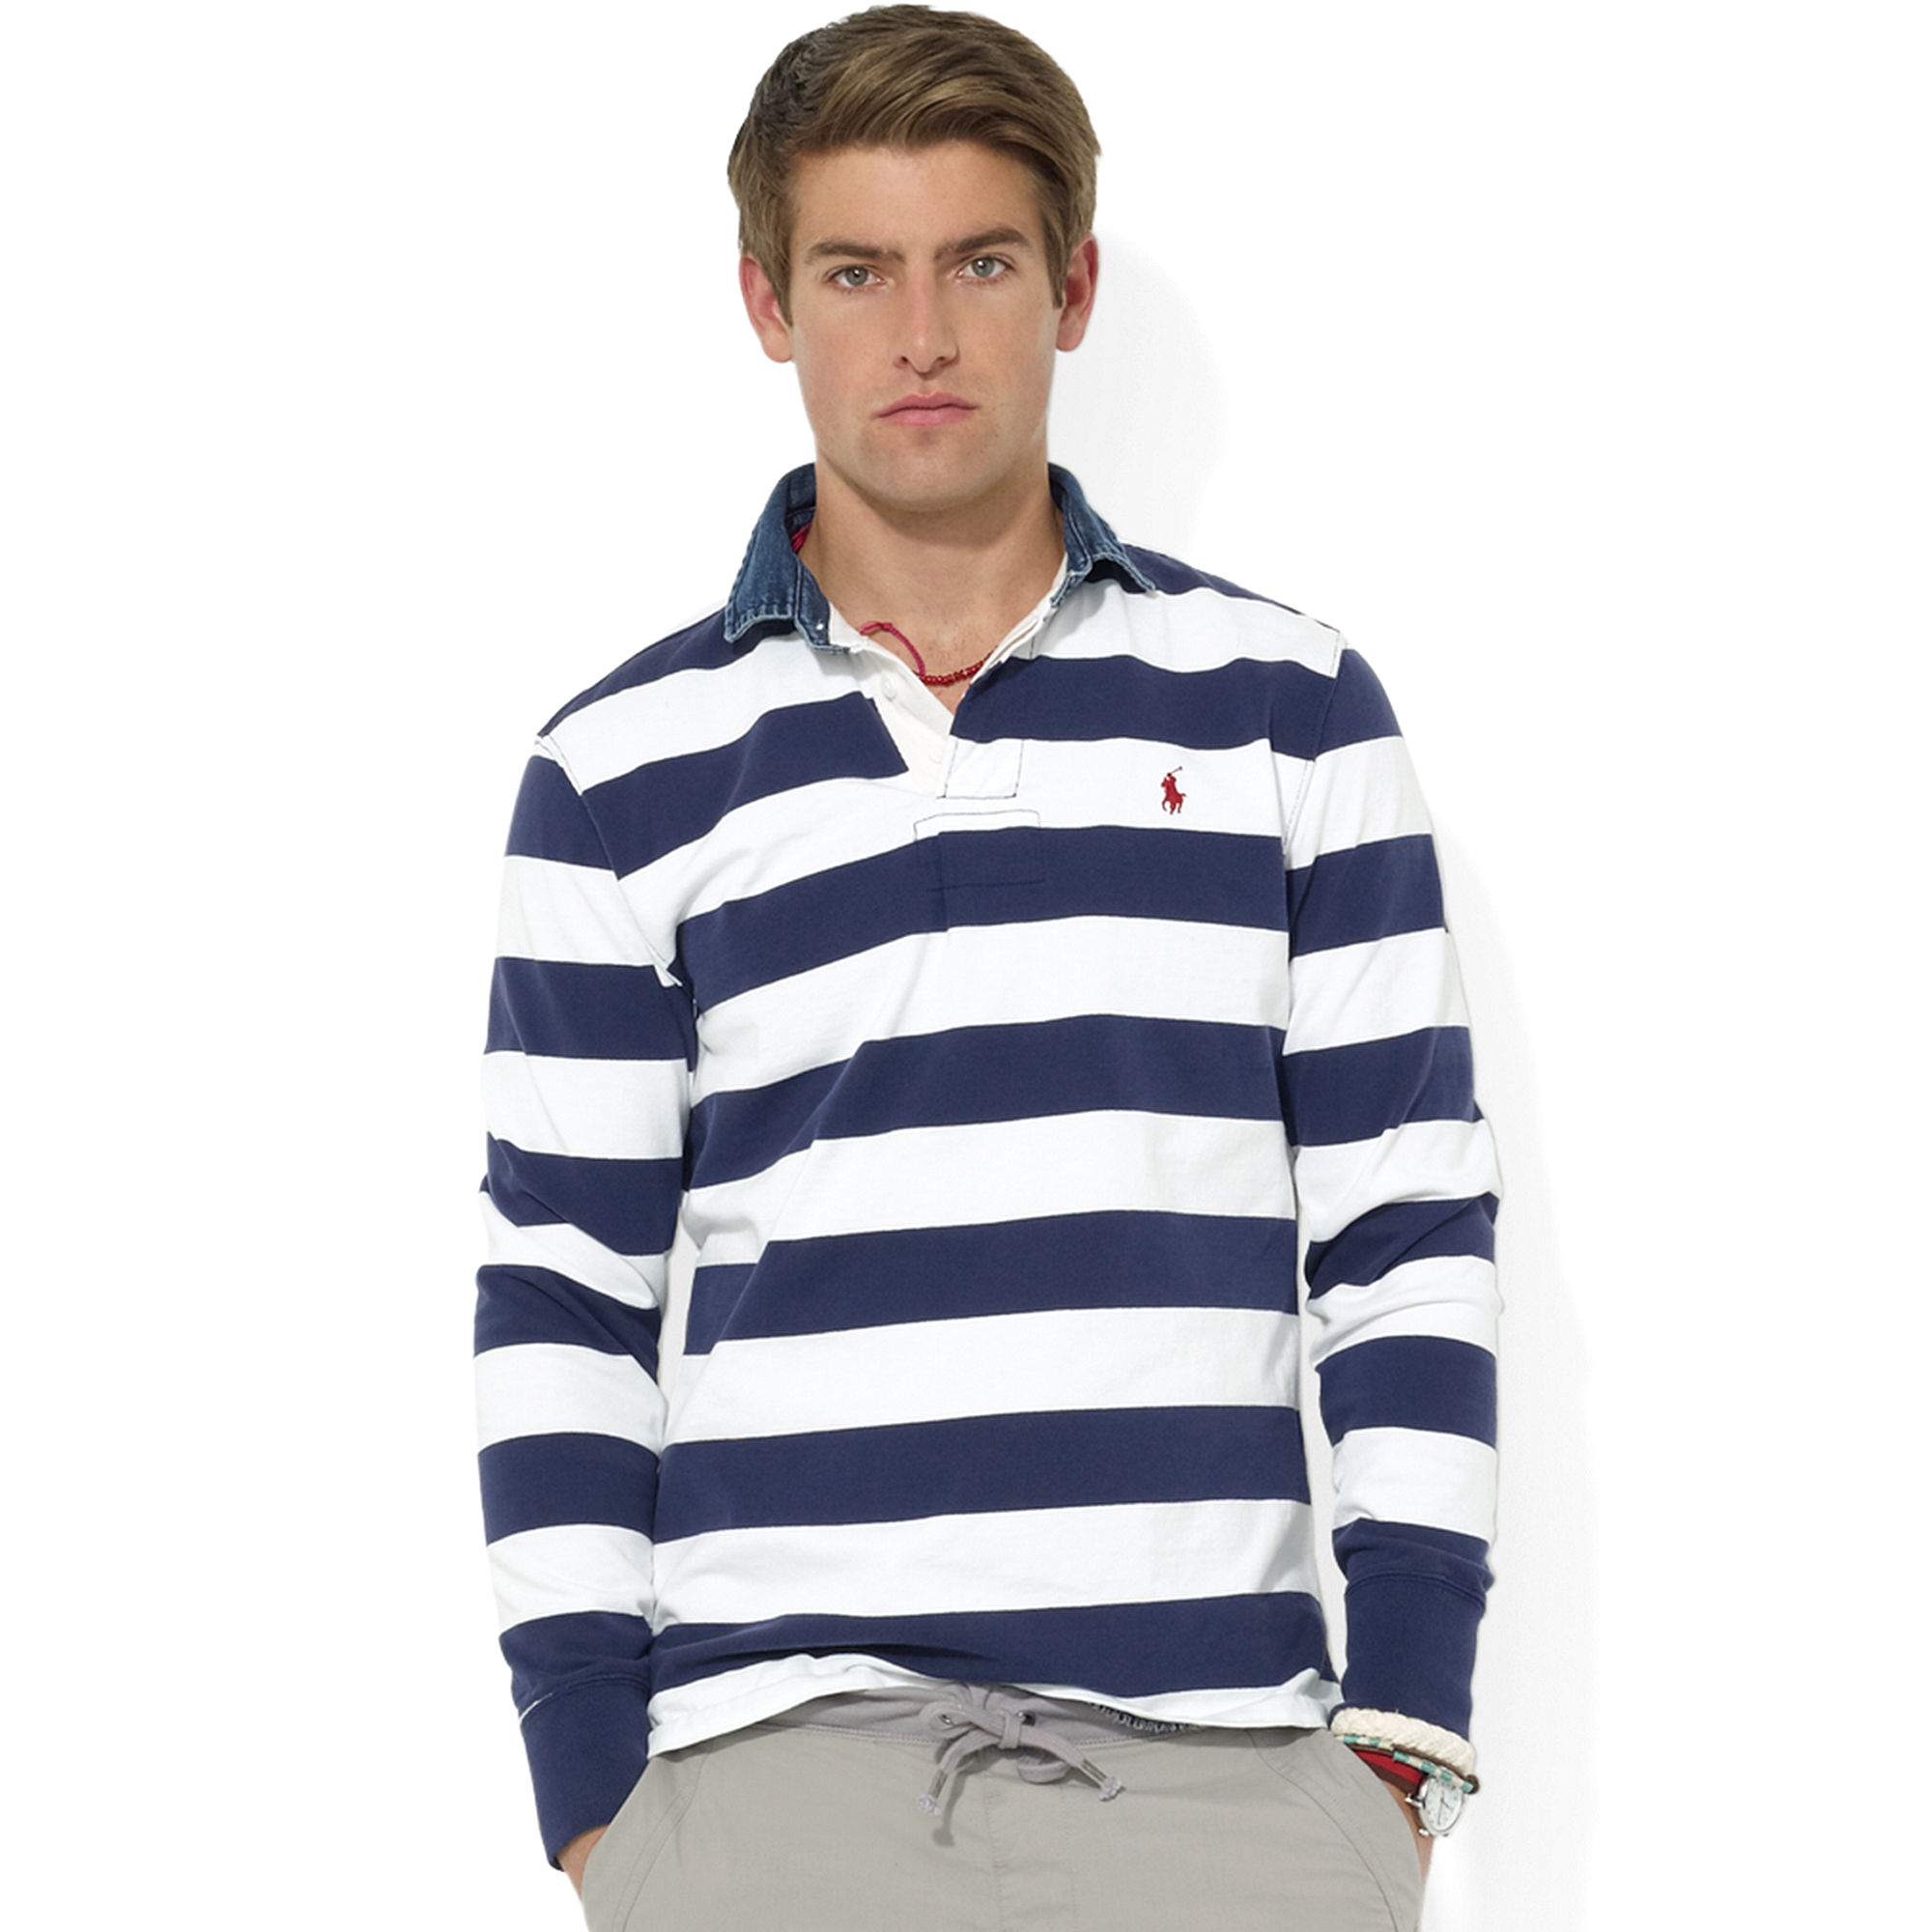 ralph lauren customfit longsleeve striped jersey rugby in blue for men druid navy lyst. Black Bedroom Furniture Sets. Home Design Ideas